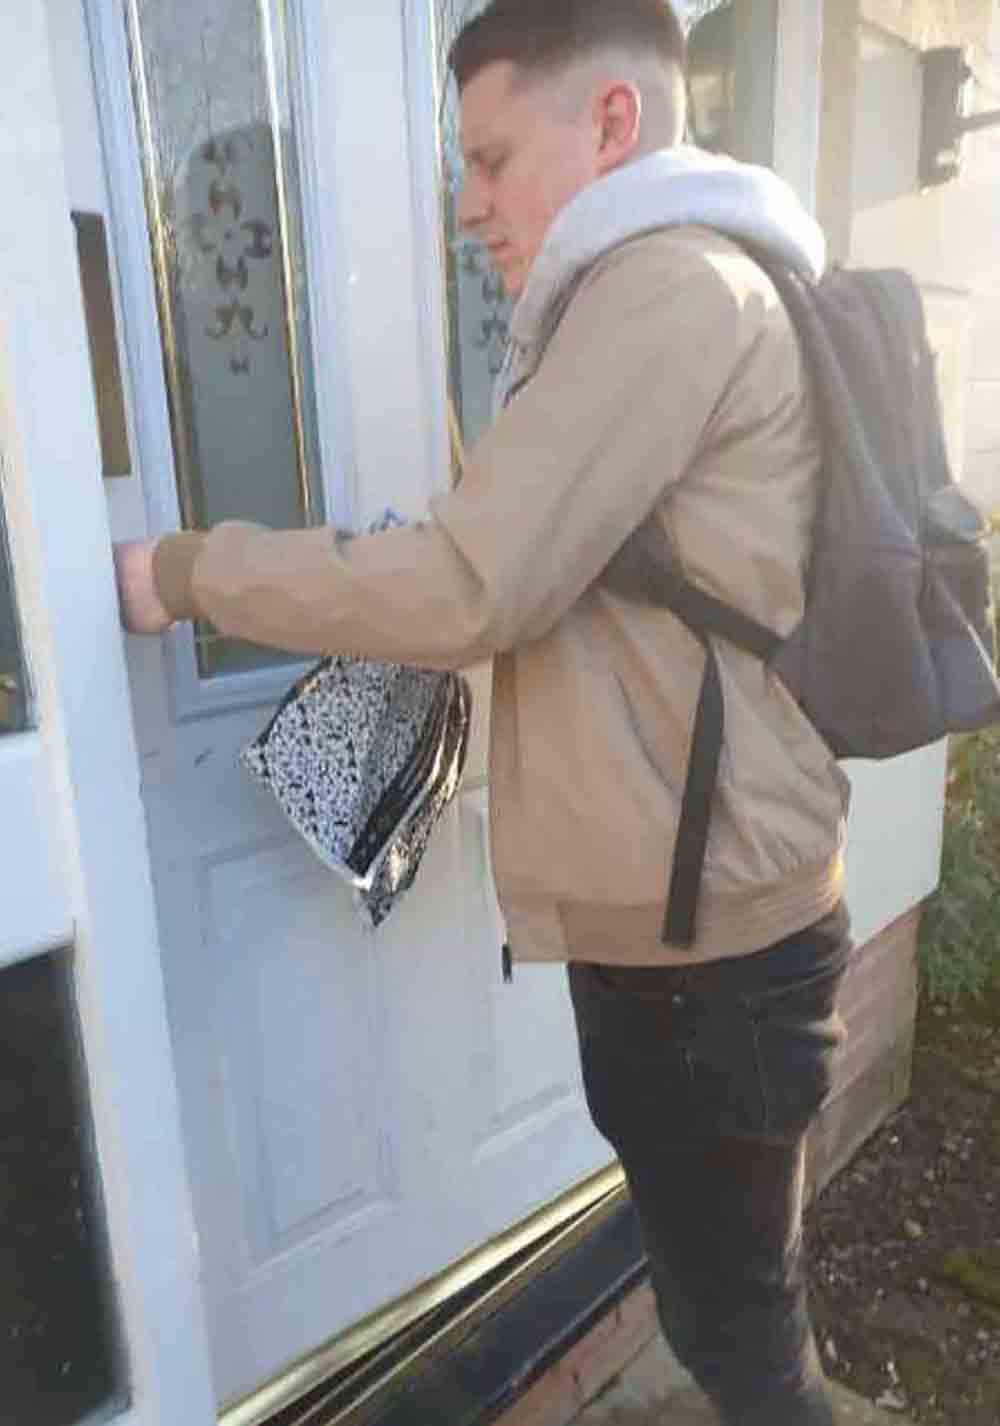 """Hermes customer papped by driver due to being """"suspicious"""" - Viral News UK"""